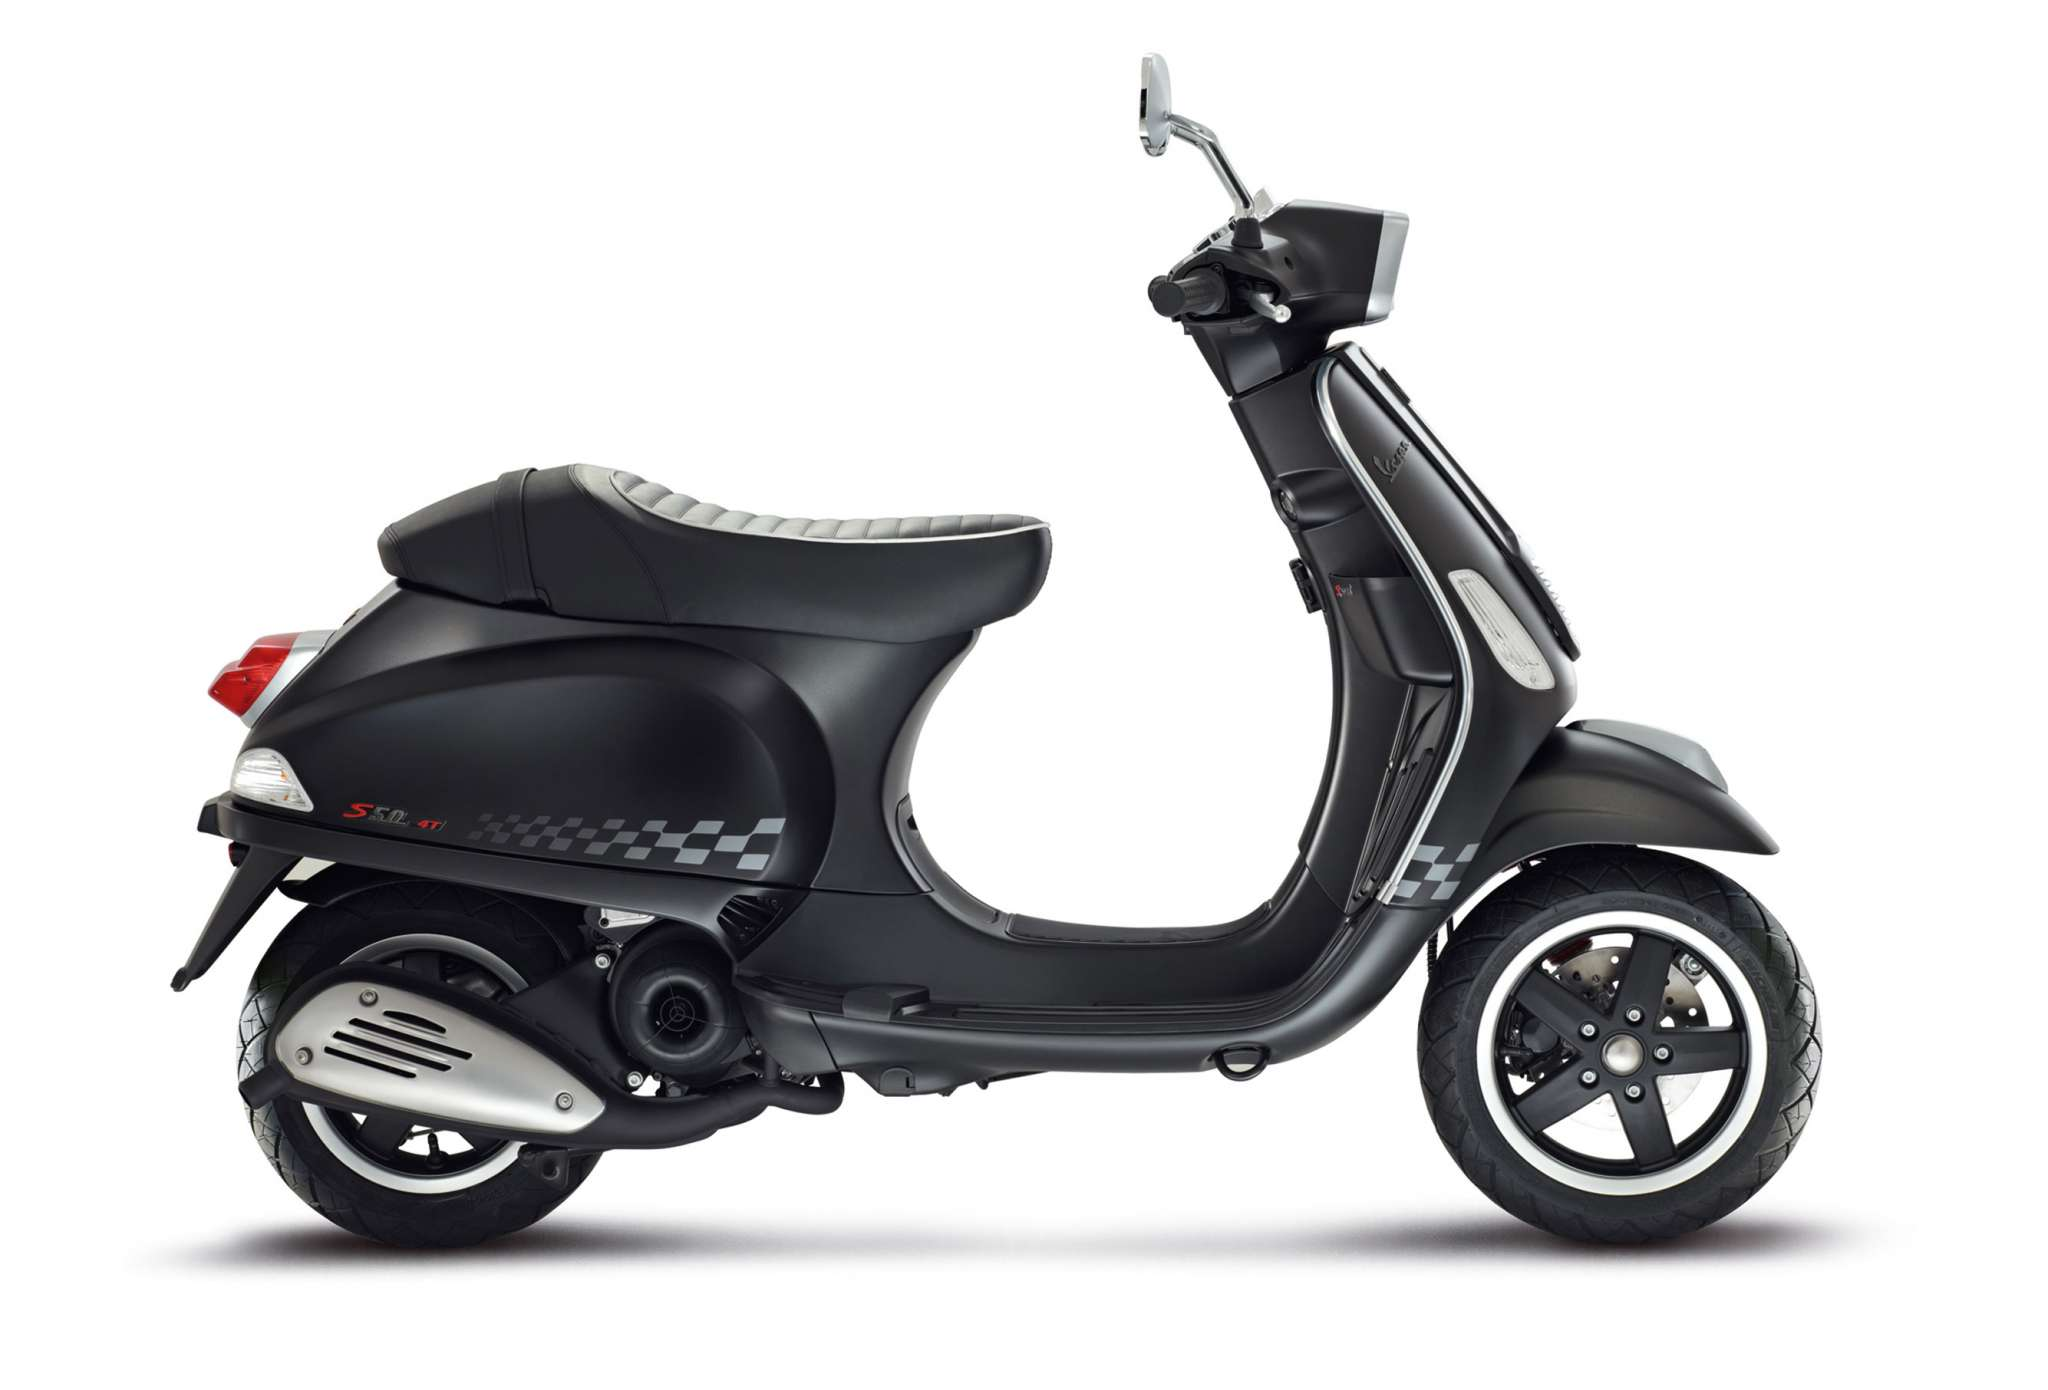 2013 vespa s150ie super sport se scooter review. Black Bedroom Furniture Sets. Home Design Ideas